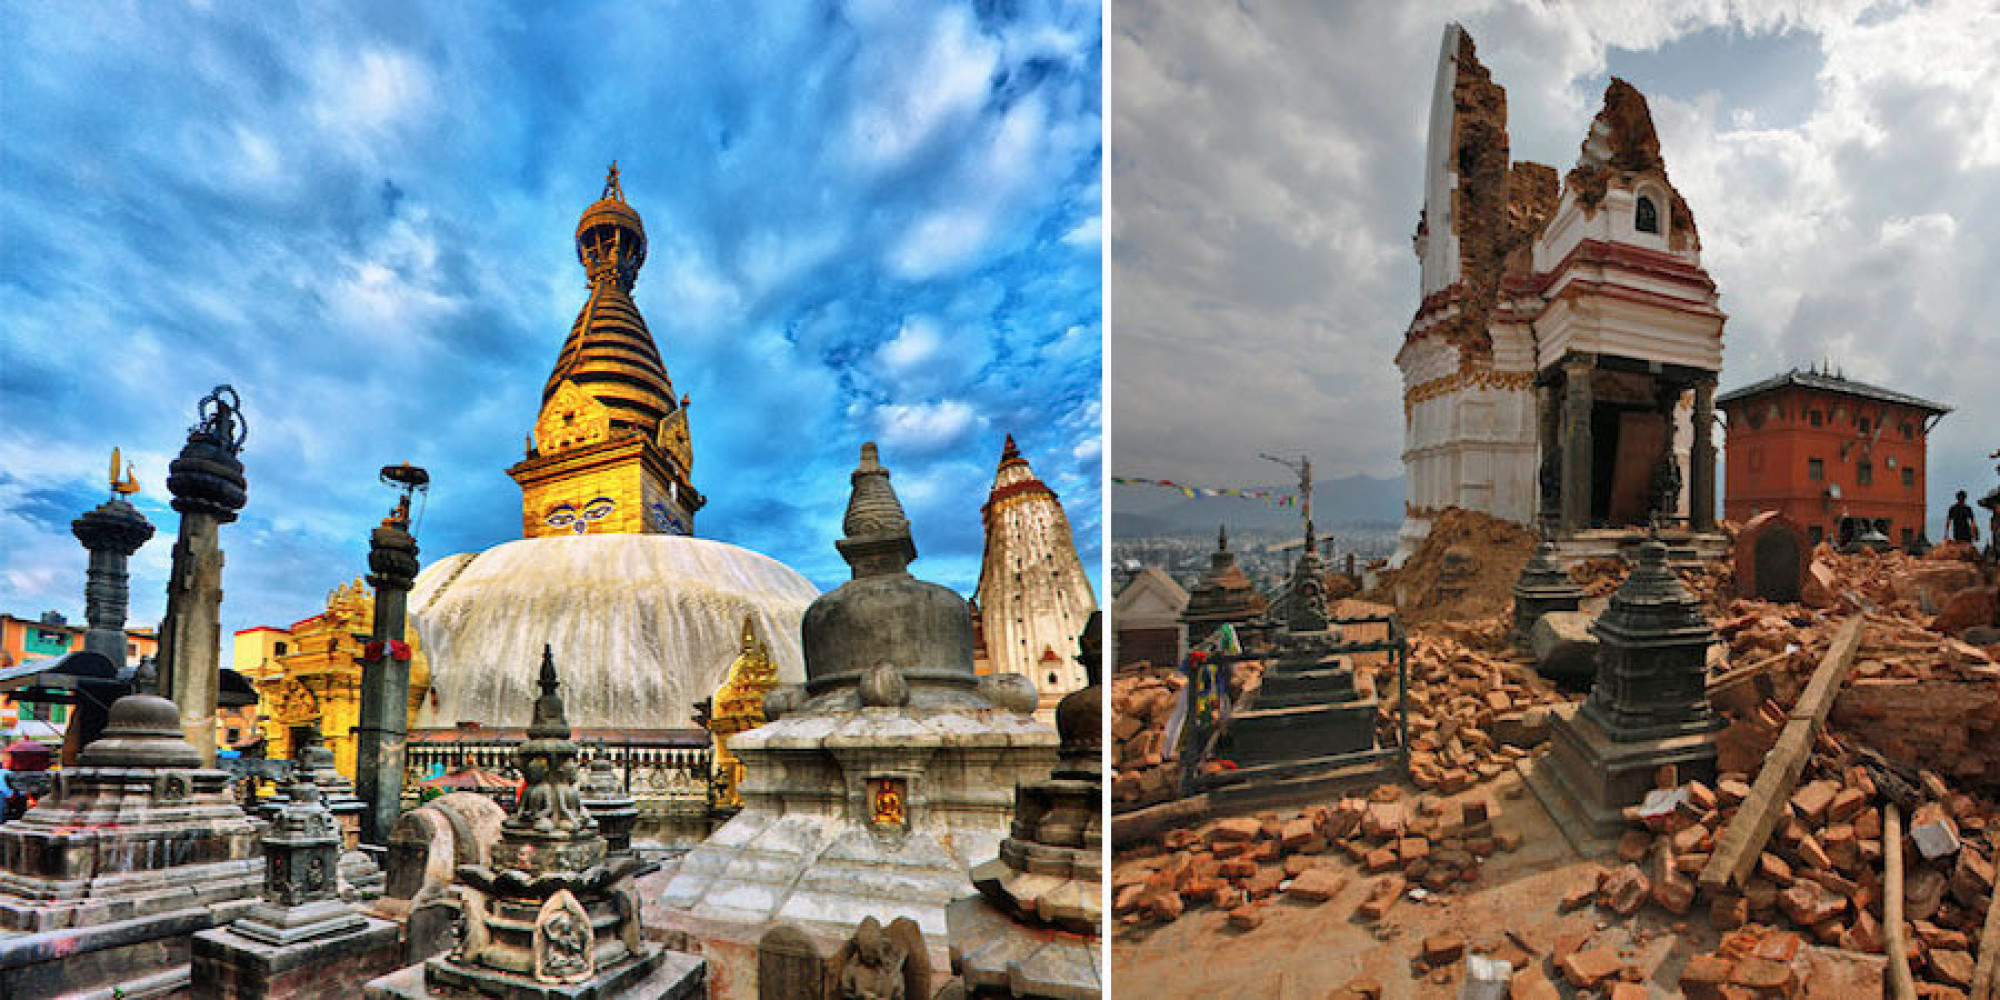 10 Sacred Sites Damaged Or Destroyed In The Last 10 Years And What Some Are Doing To Rebuild